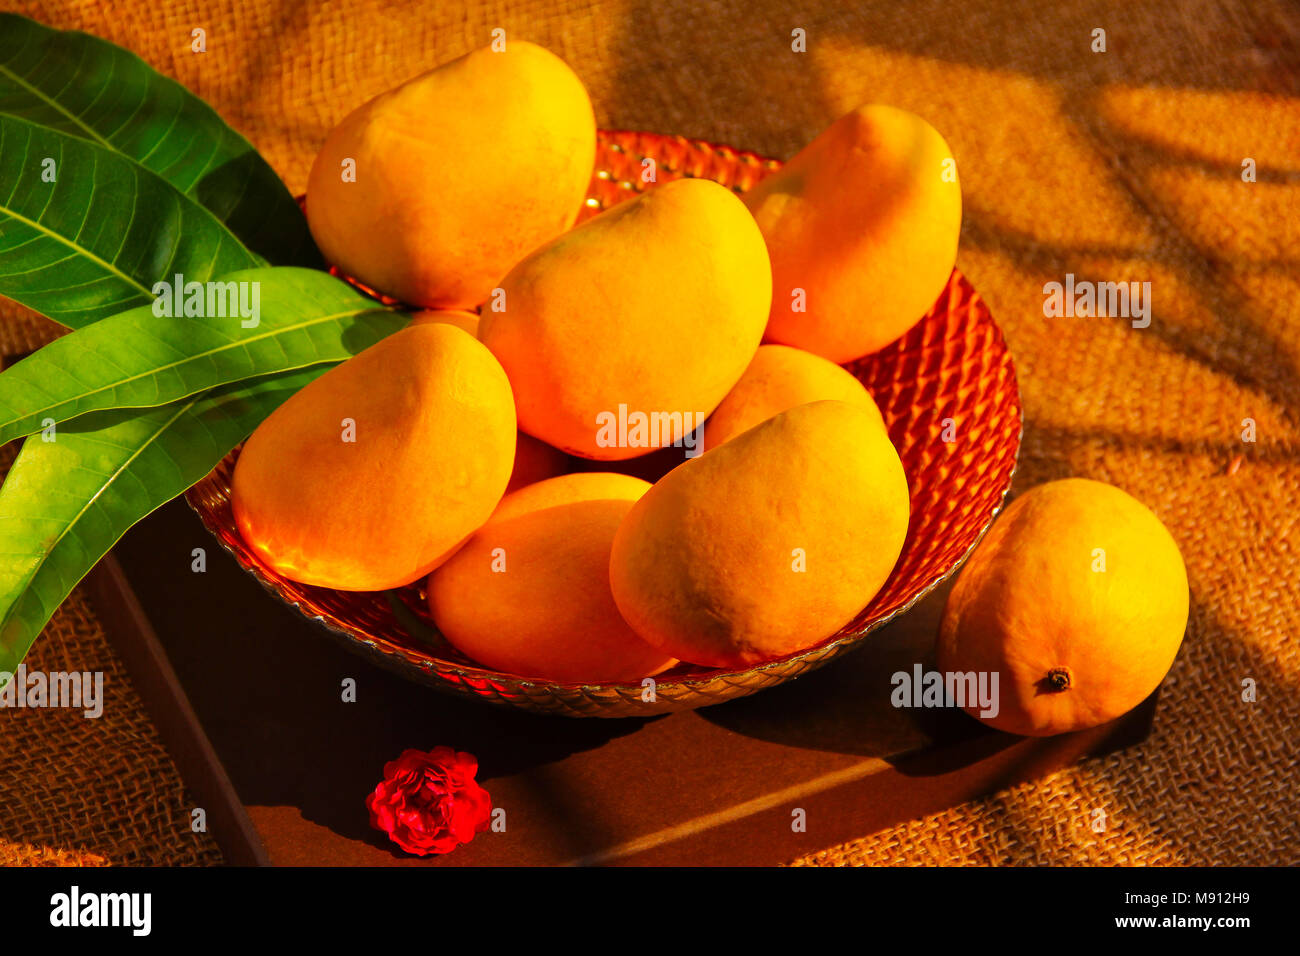 Alphonso mango is a seasonal fruit, considered to be among the most superior varieties of the fruit in terms of sweetness, richness and flavour.The va - Stock Image